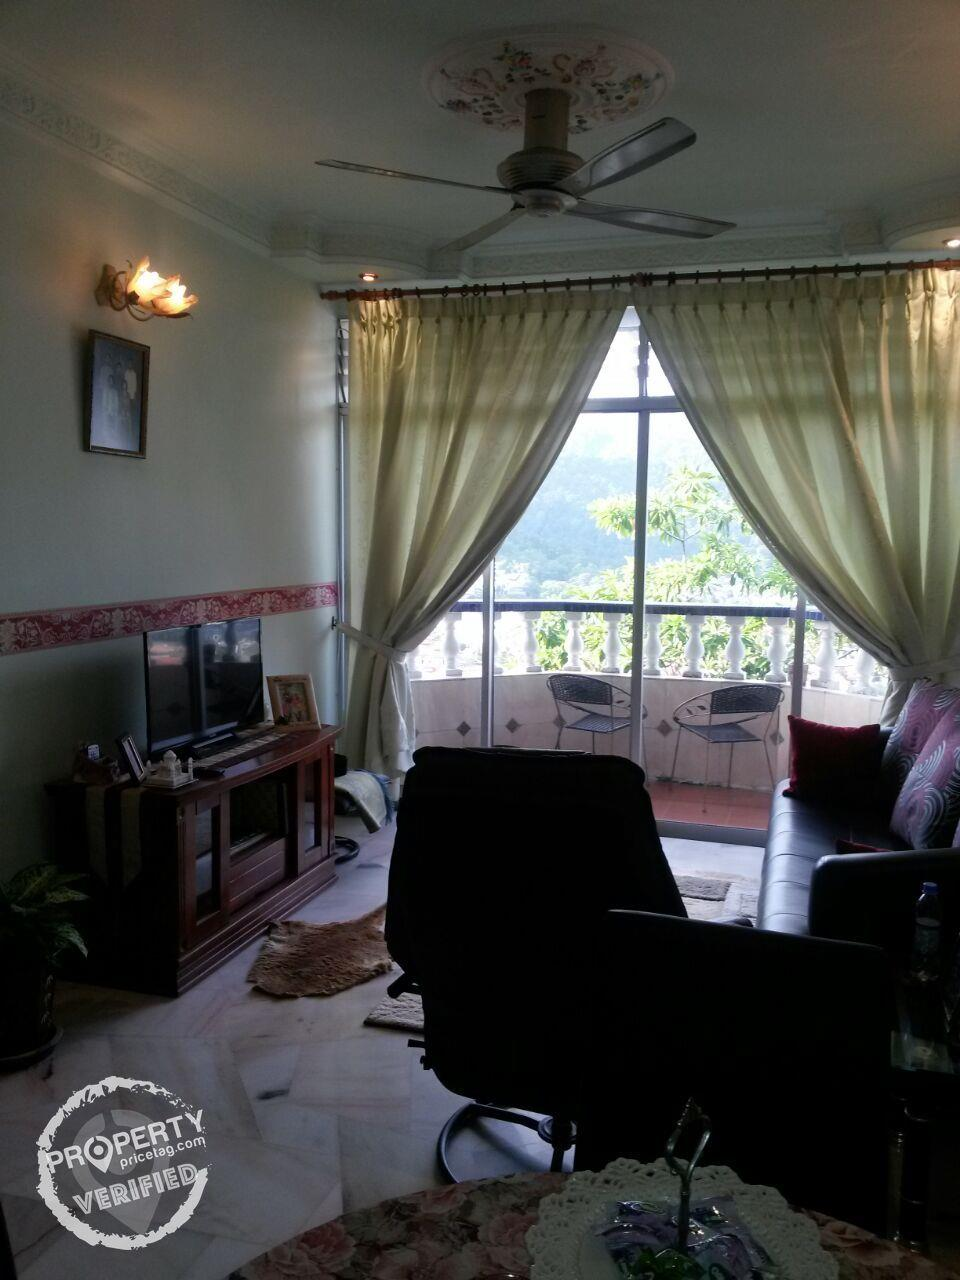 Townhouse for Sale in Tanjung Bungah, Penang